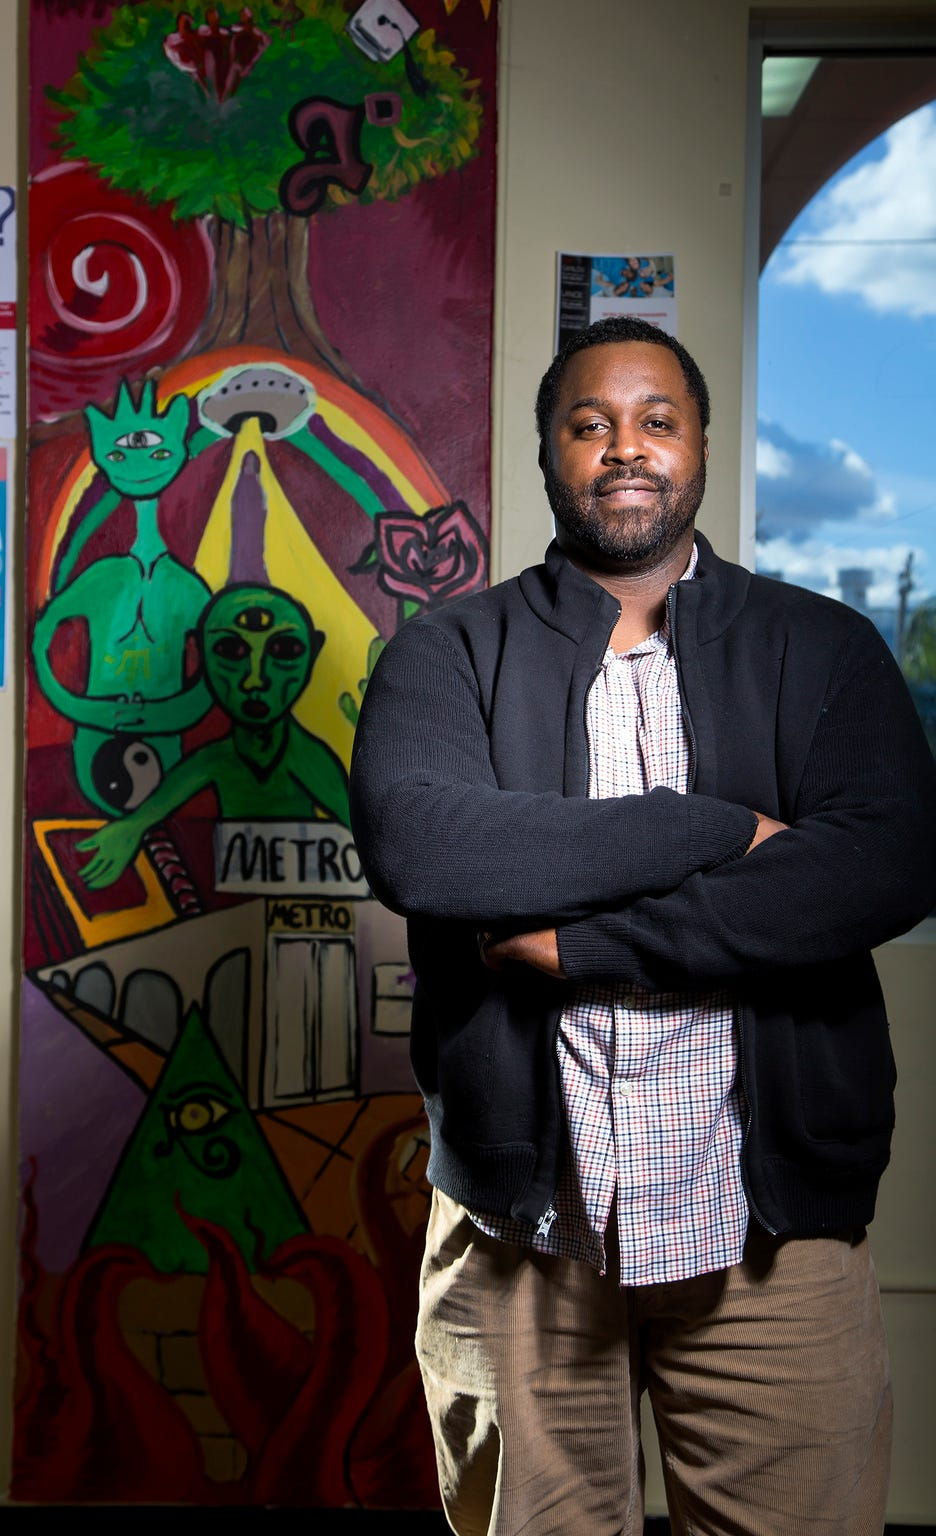 Lance Meeks, program manager Goodwill Metro/REC youth program, poses in front of a painting created by students at the reengagement center in Tucson, Ariz. on November 22nd, 2019.